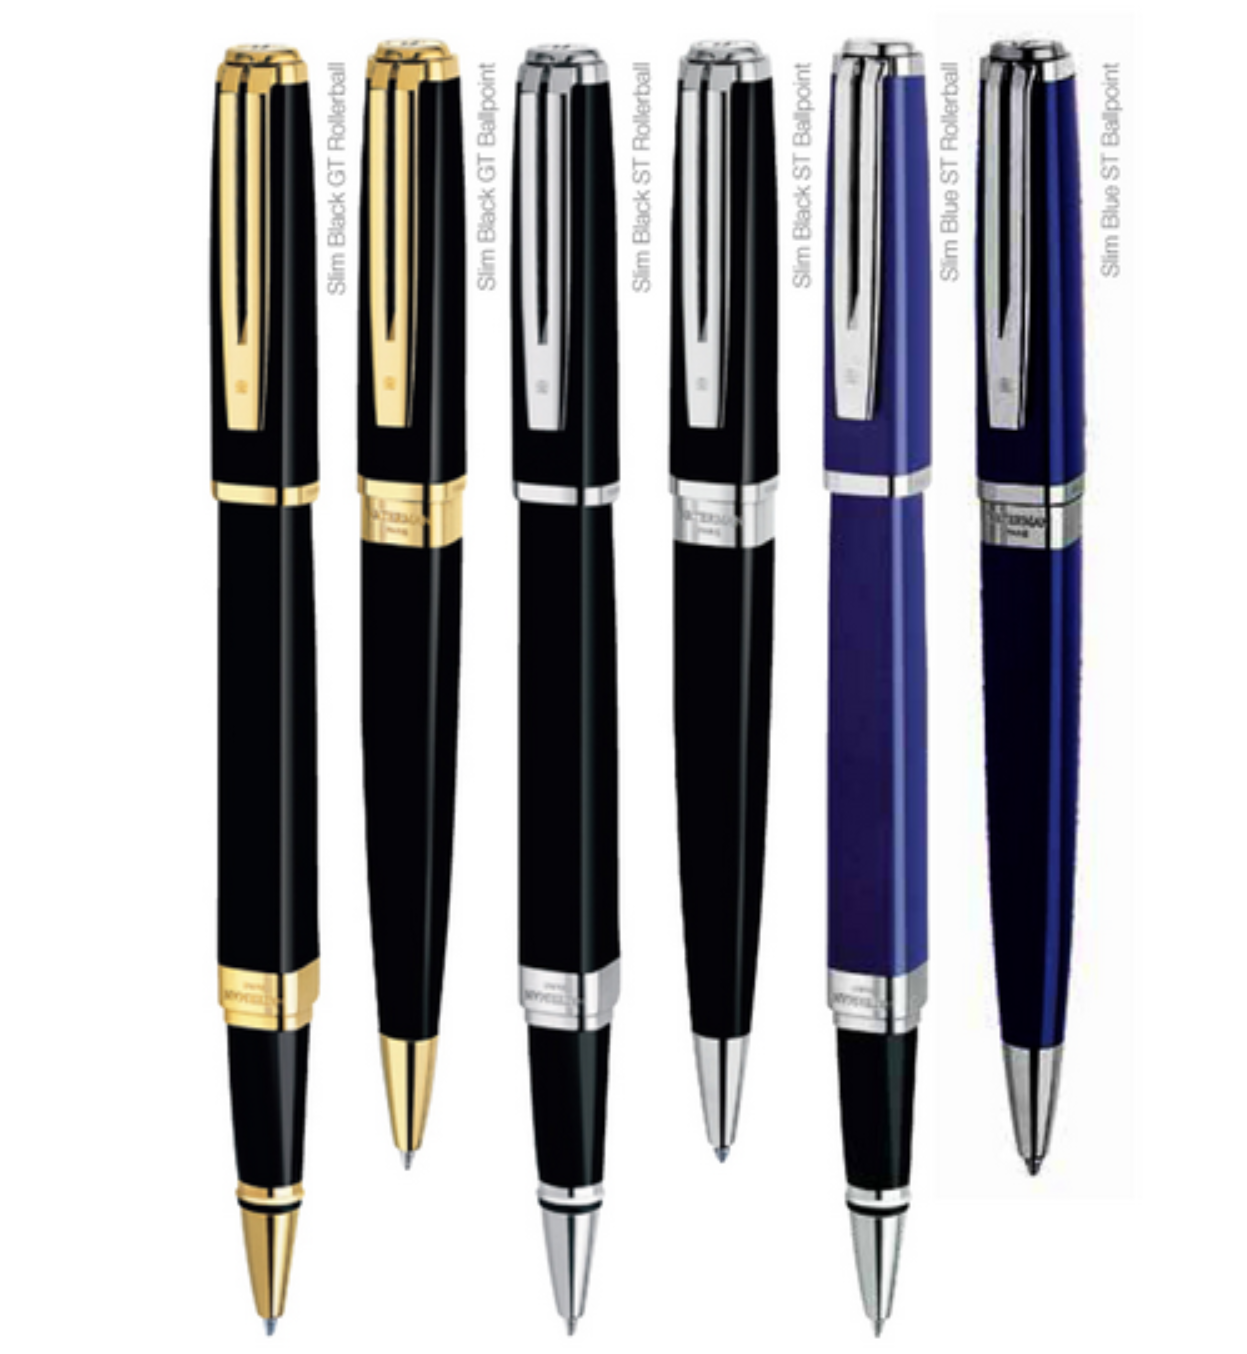 Waterman Exception Roller Pen